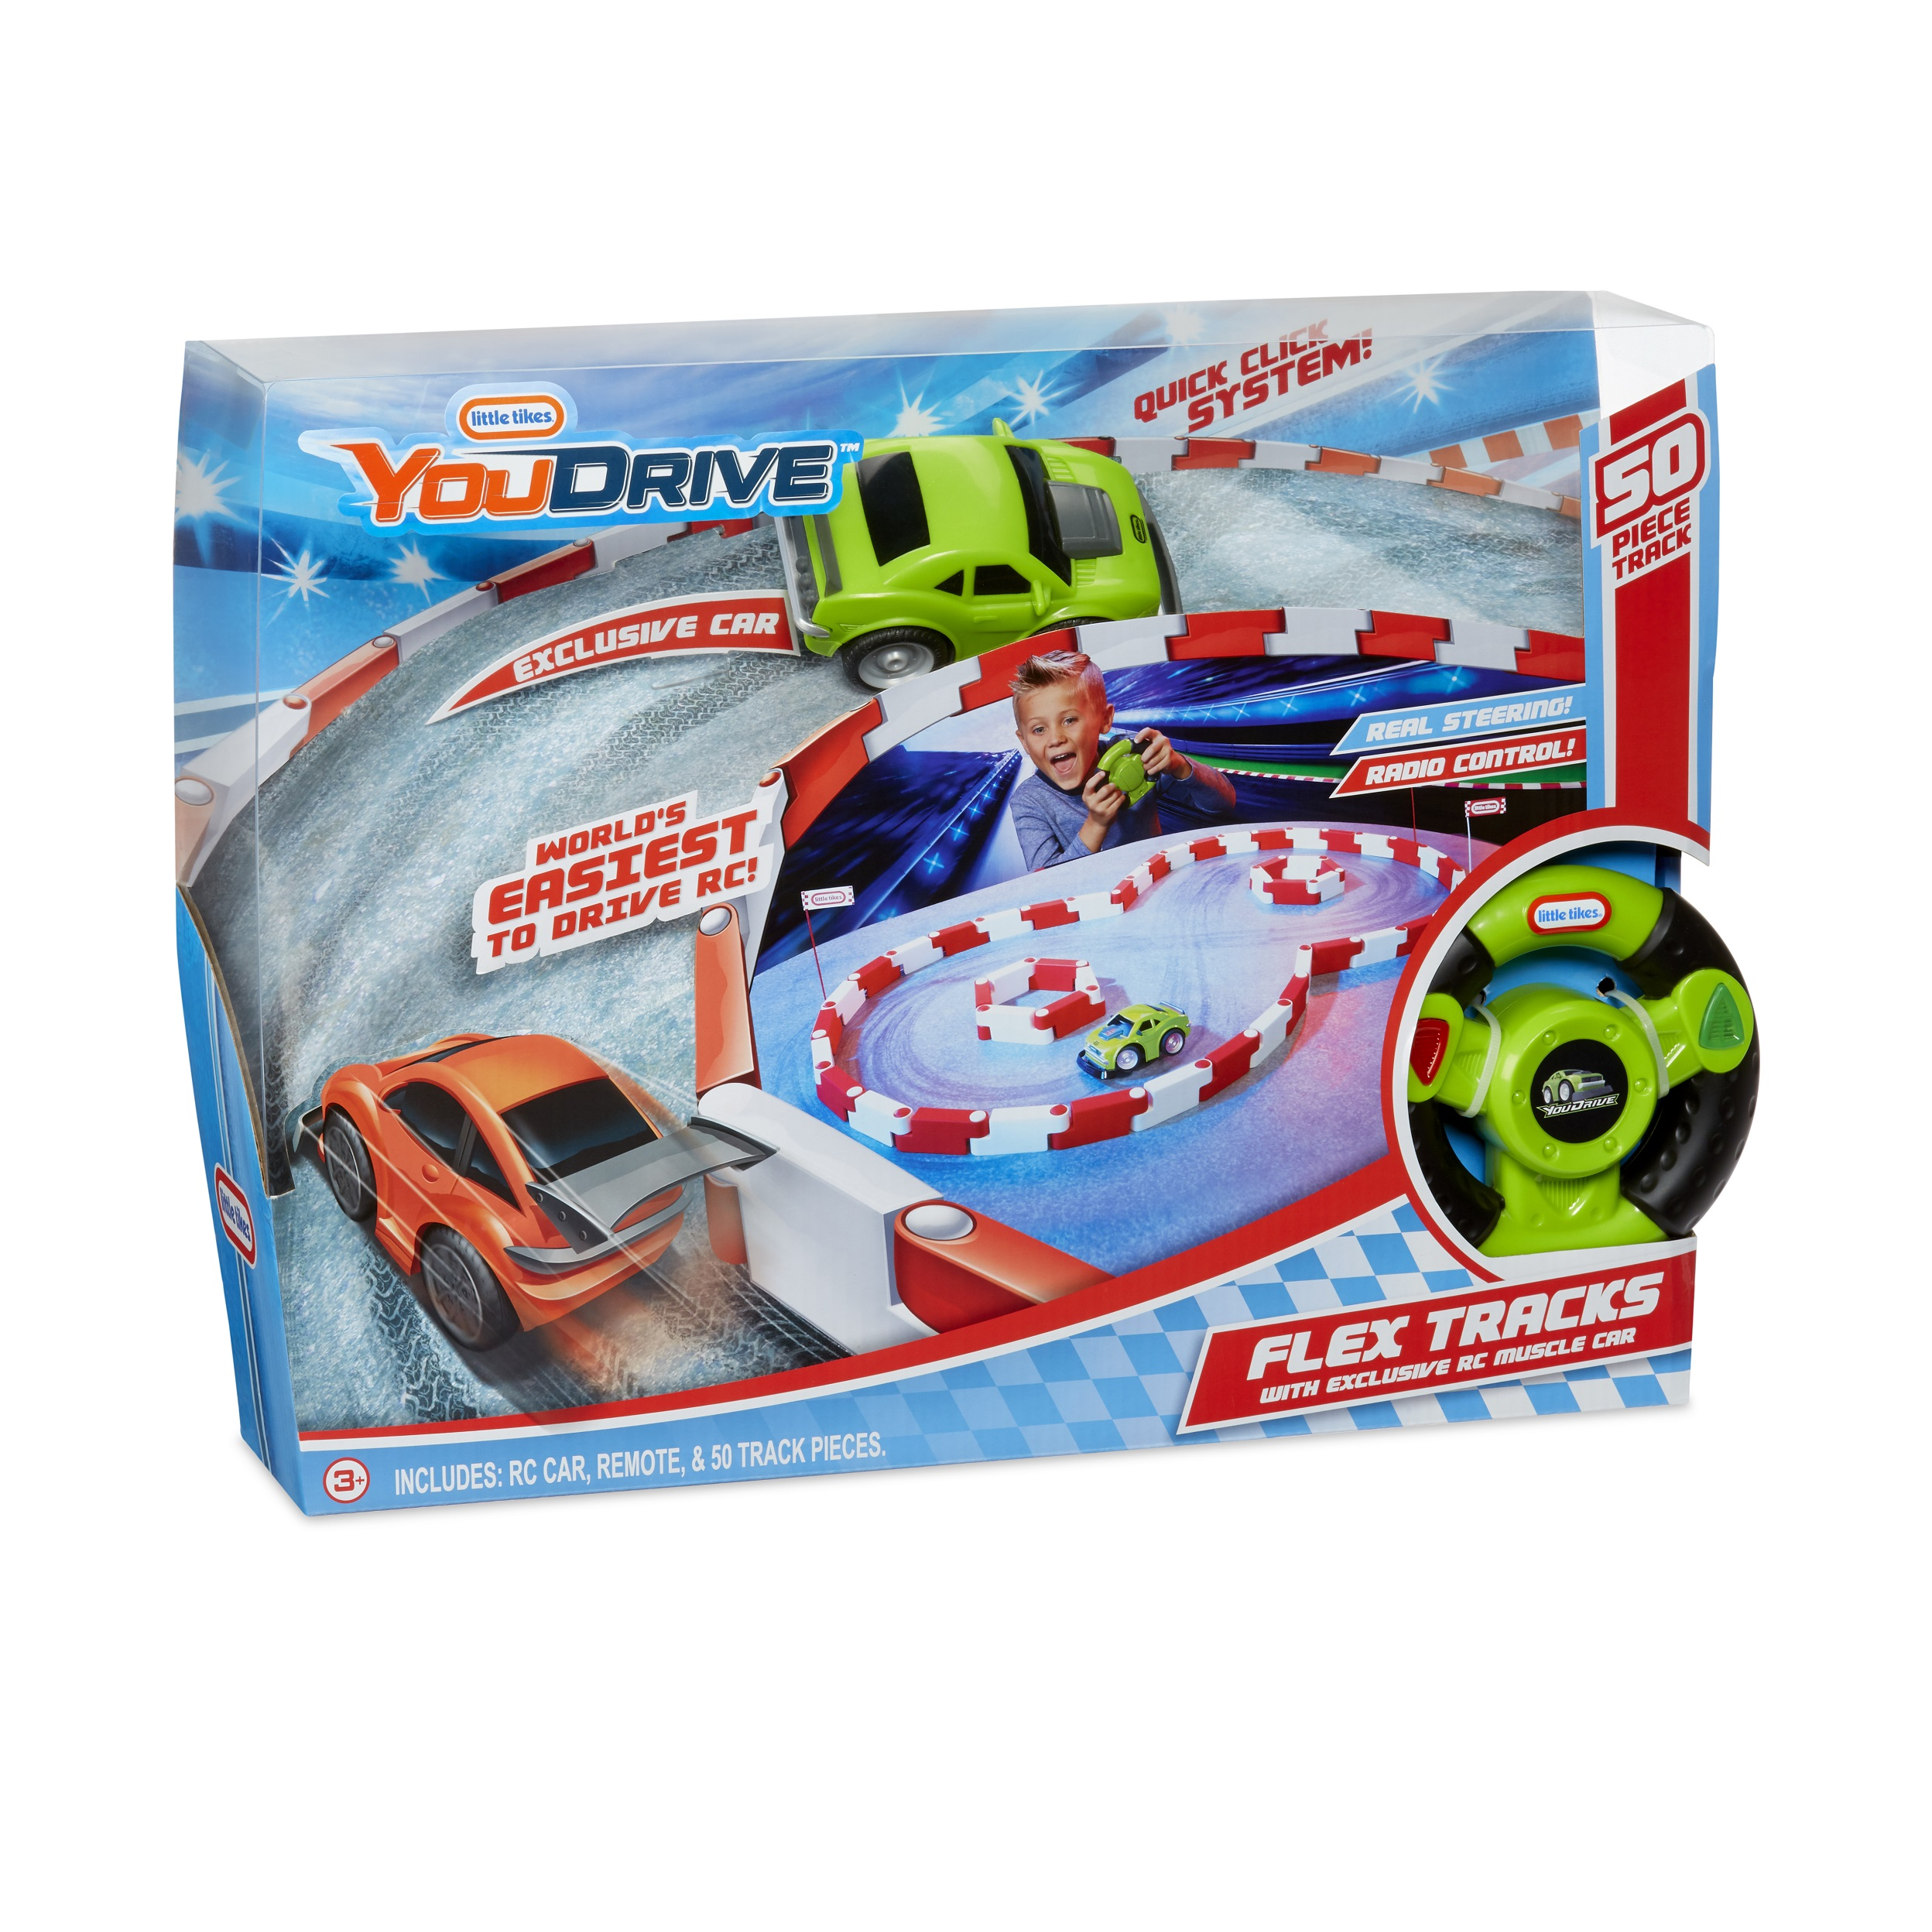 Little Tikes YouDrive Flex Tracks Green Muscle Car w/ Easy Steering RC